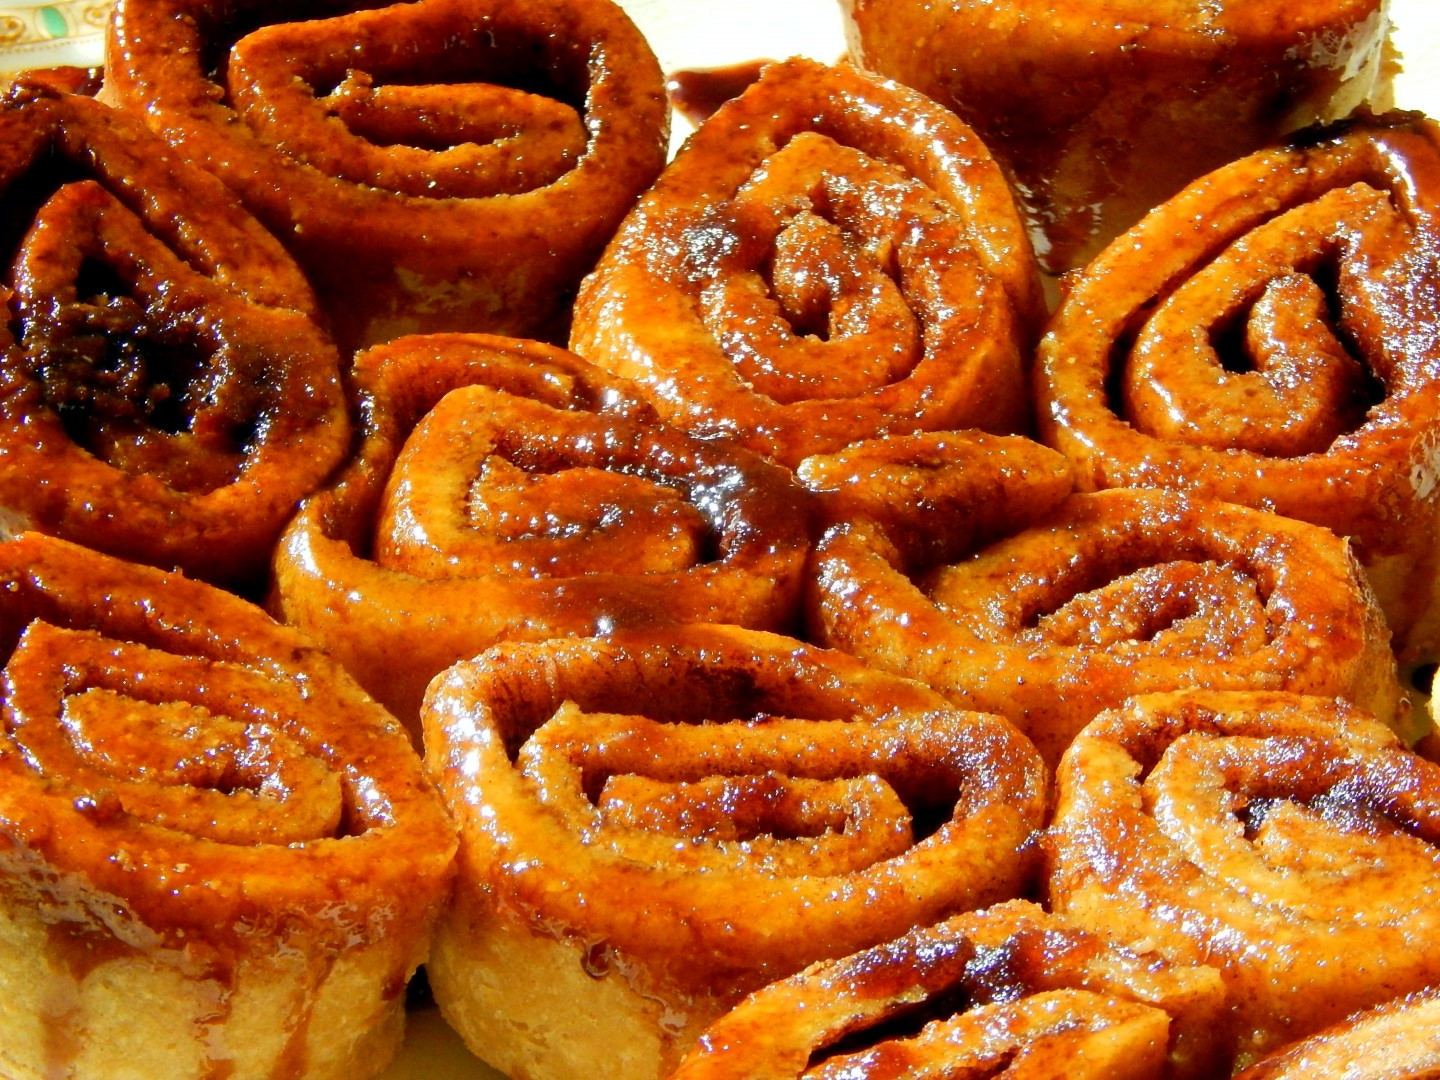 Tray of gluten free sourdough cinnamon buns.